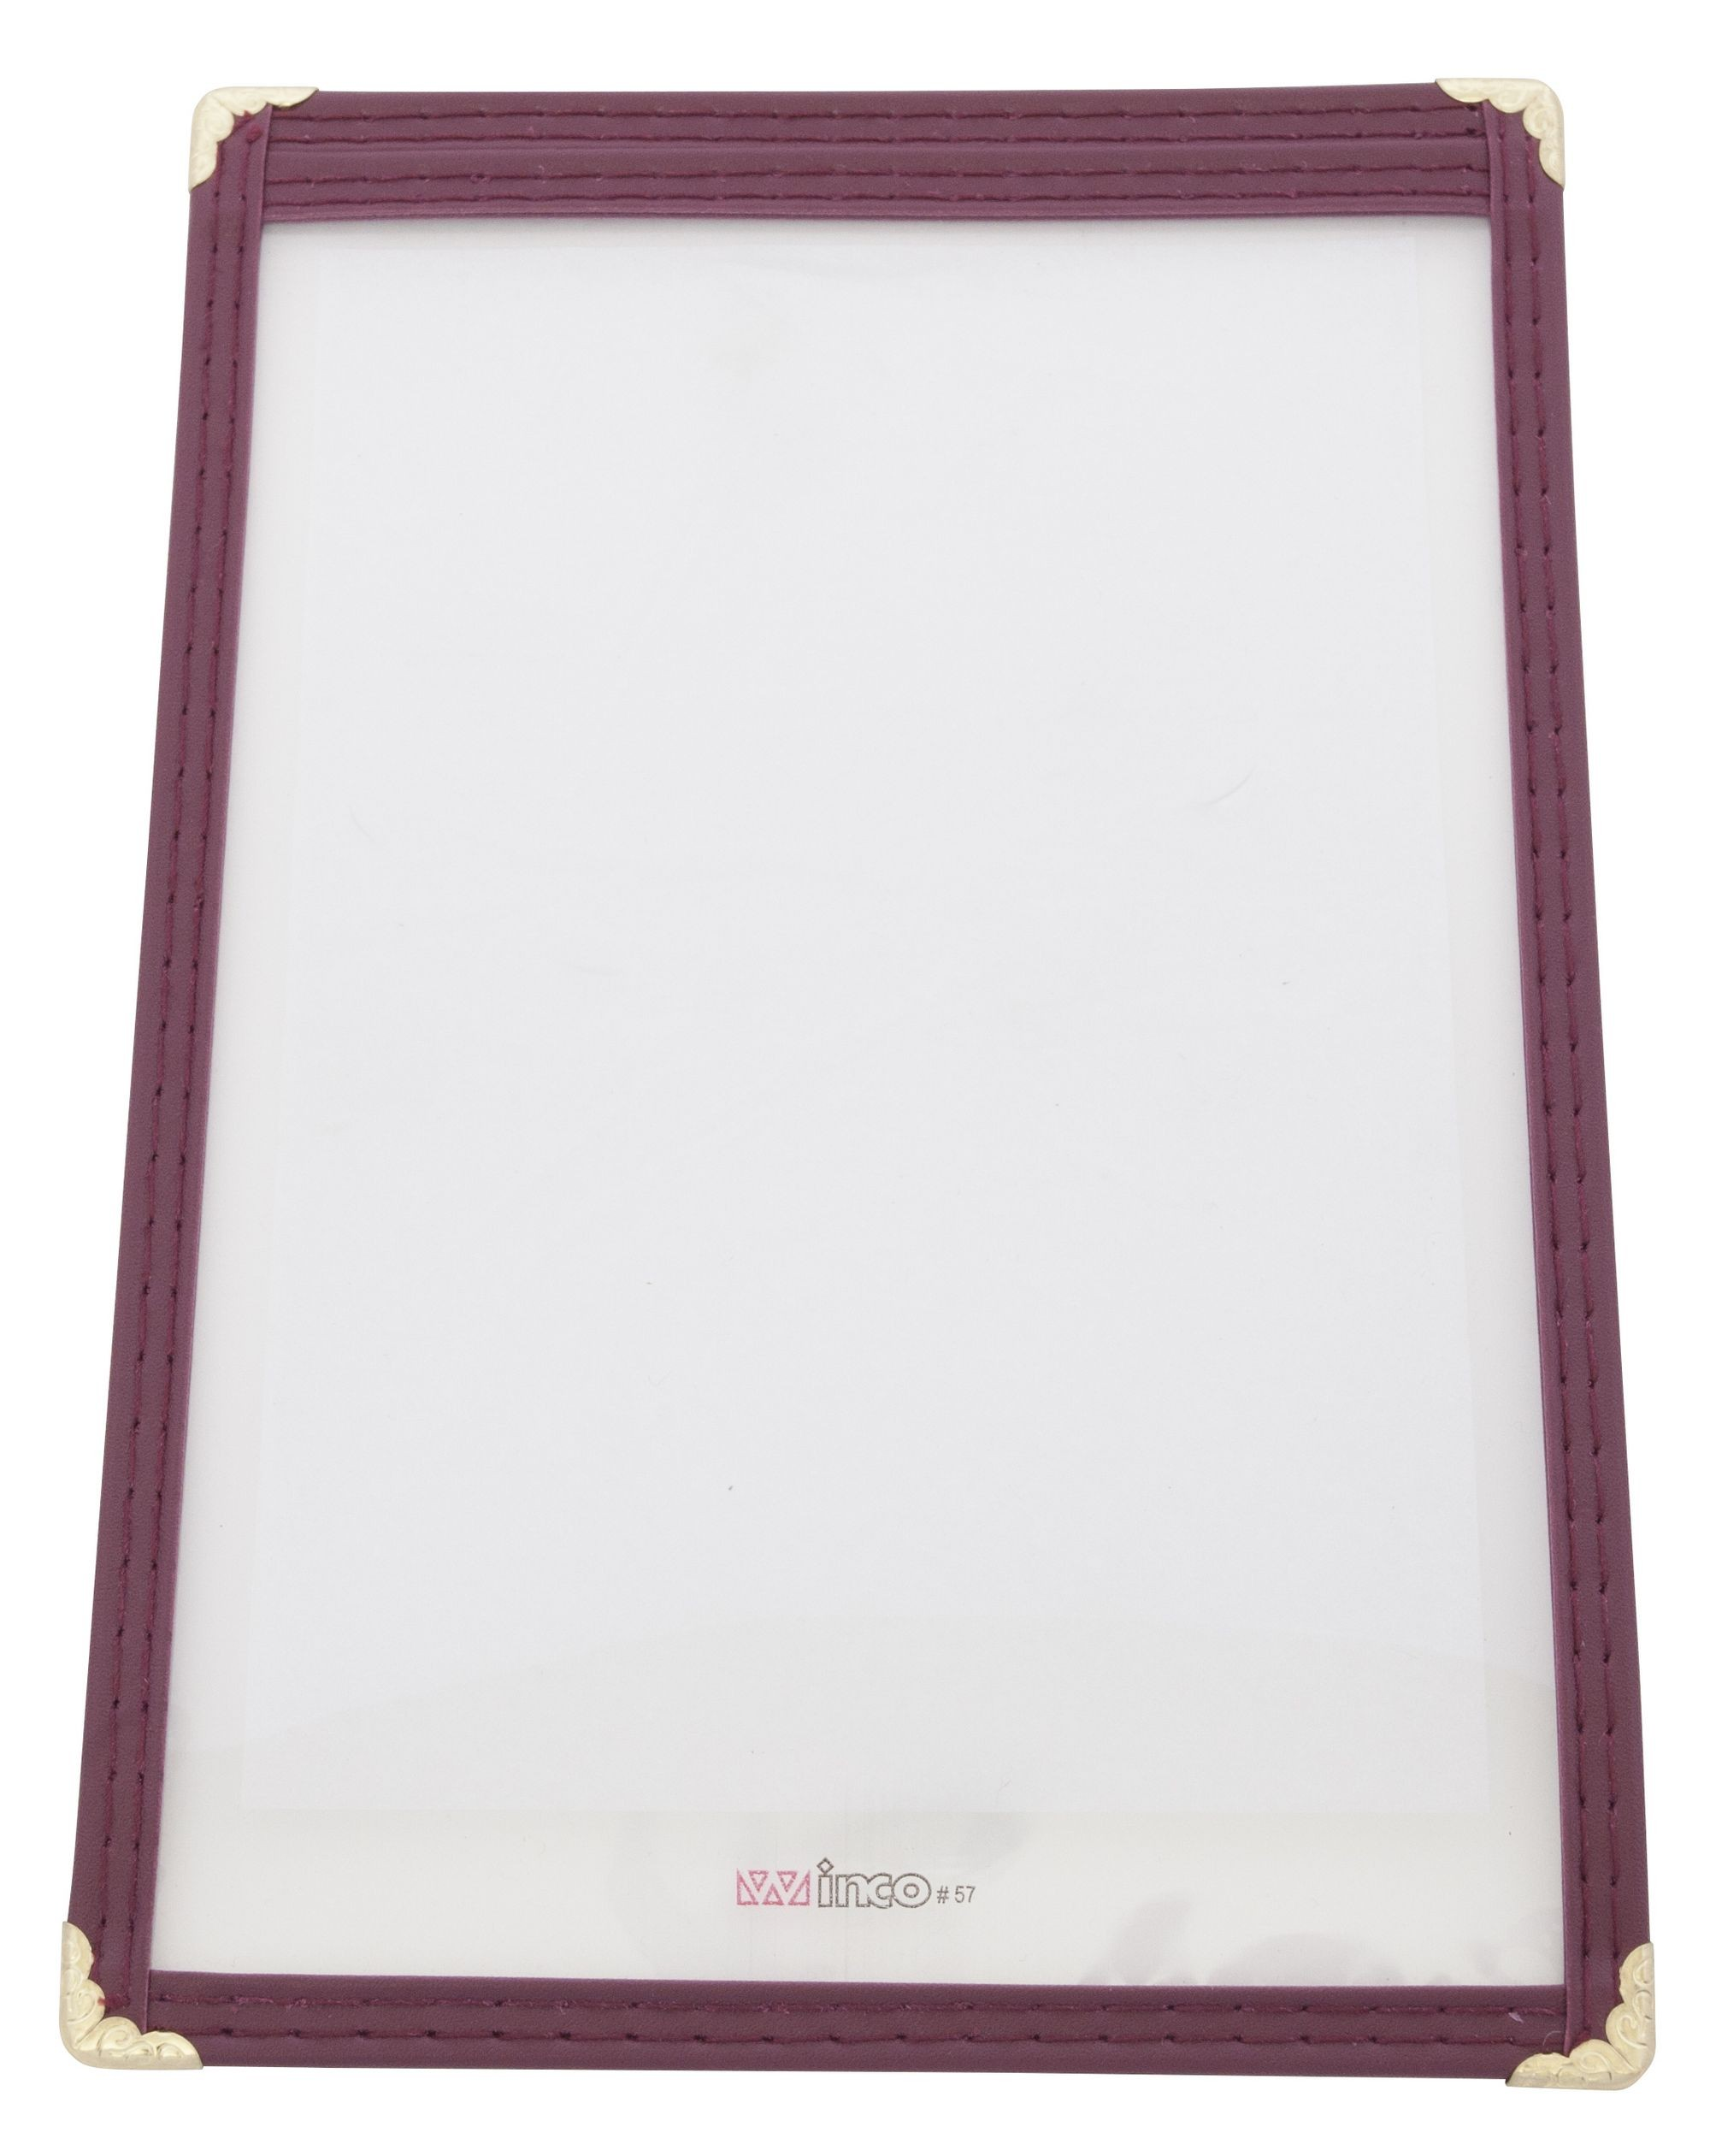 "Winco PMC-5U Burgundy Single Menu Cover, 6-3/8"" x 9-3/8"""